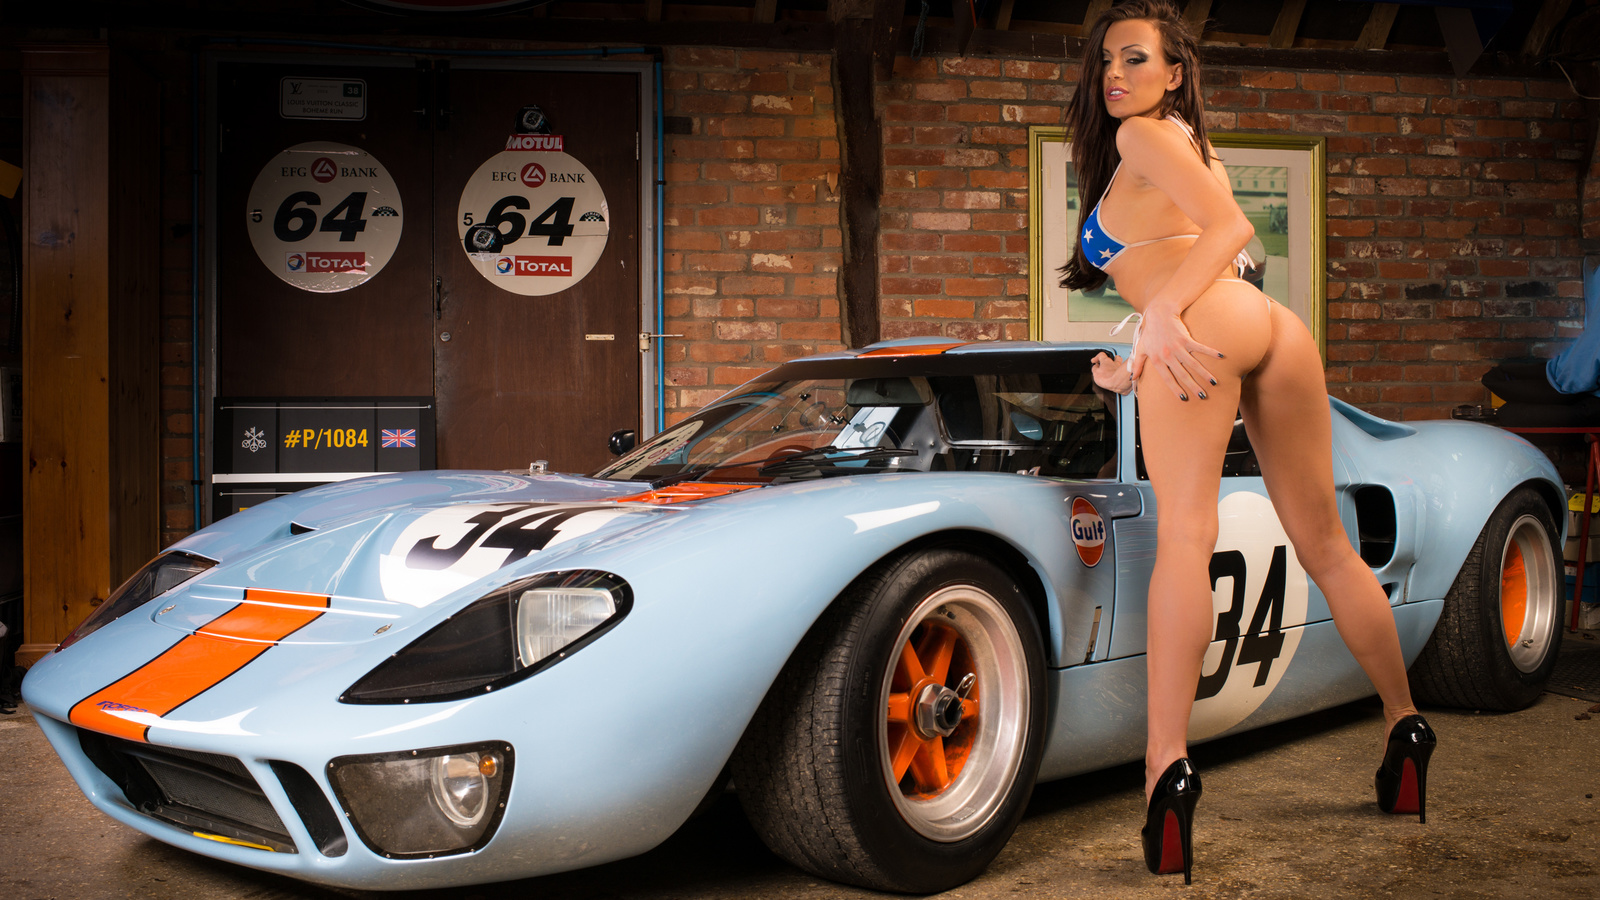 Hot Naked Girls Old Cars